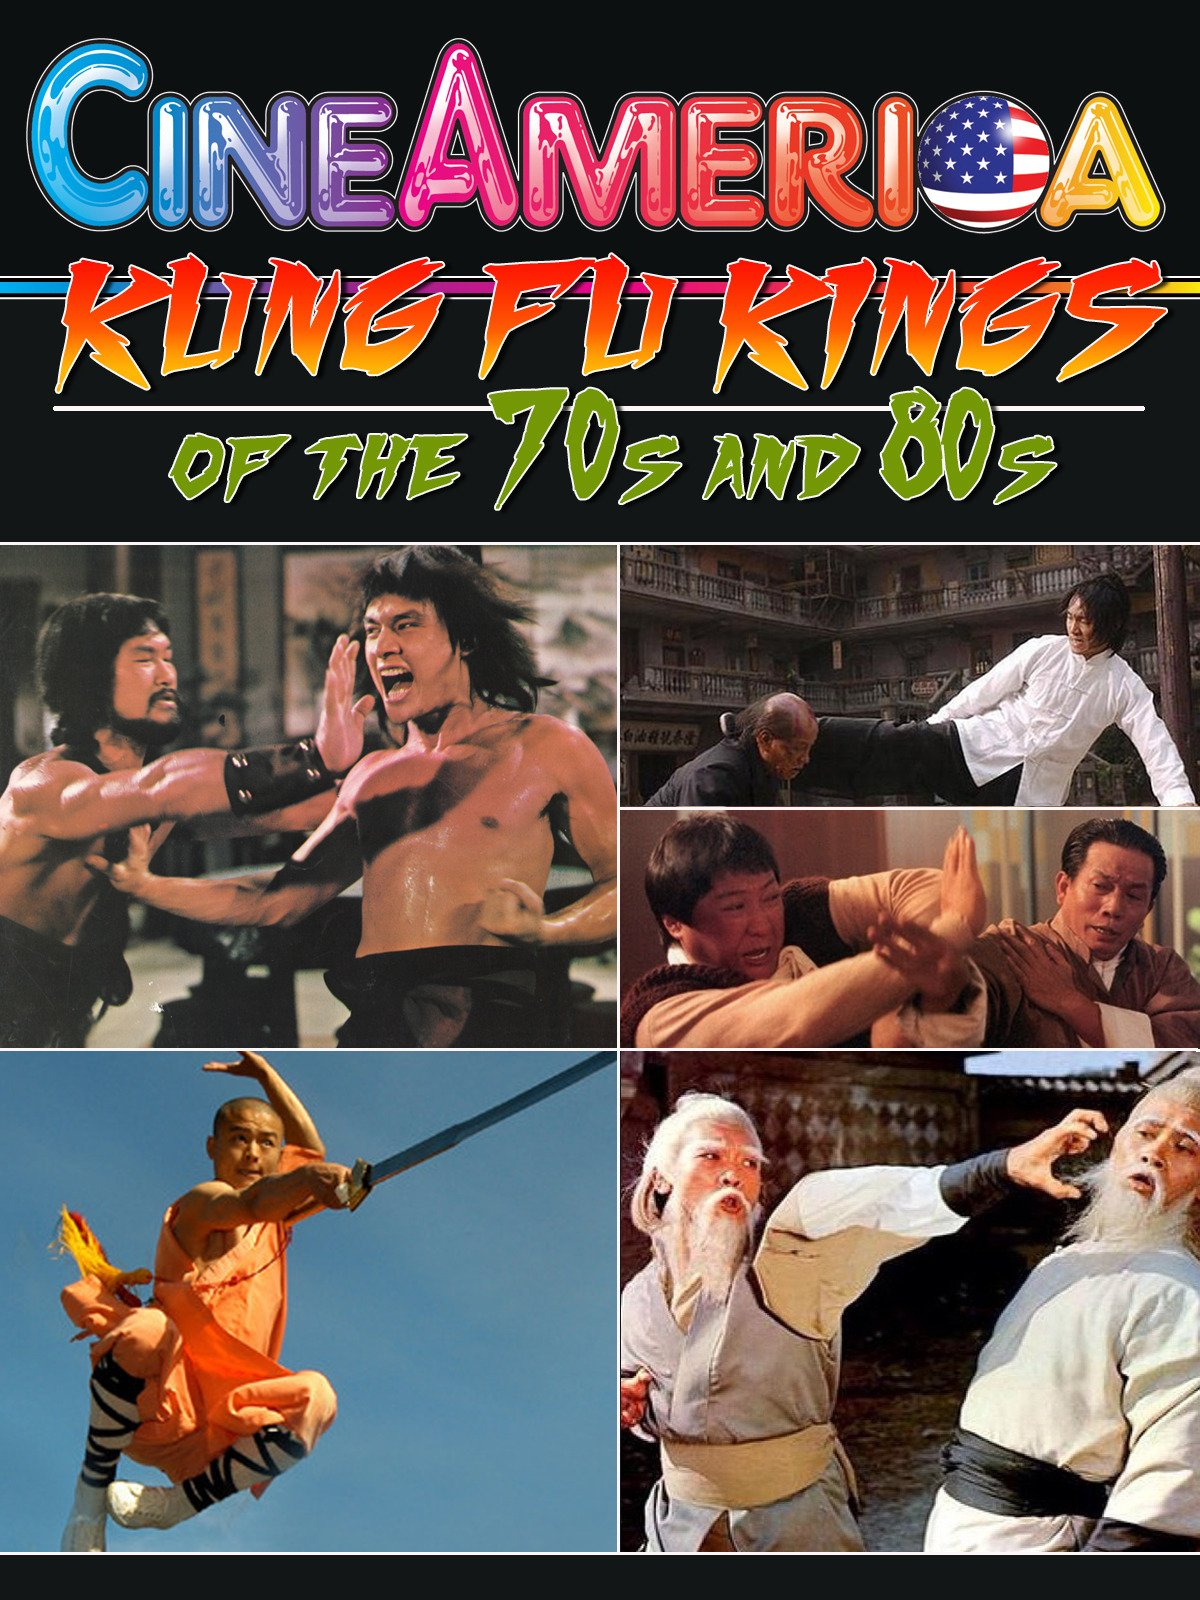 Kung Fu Kings of the 70s and 80s